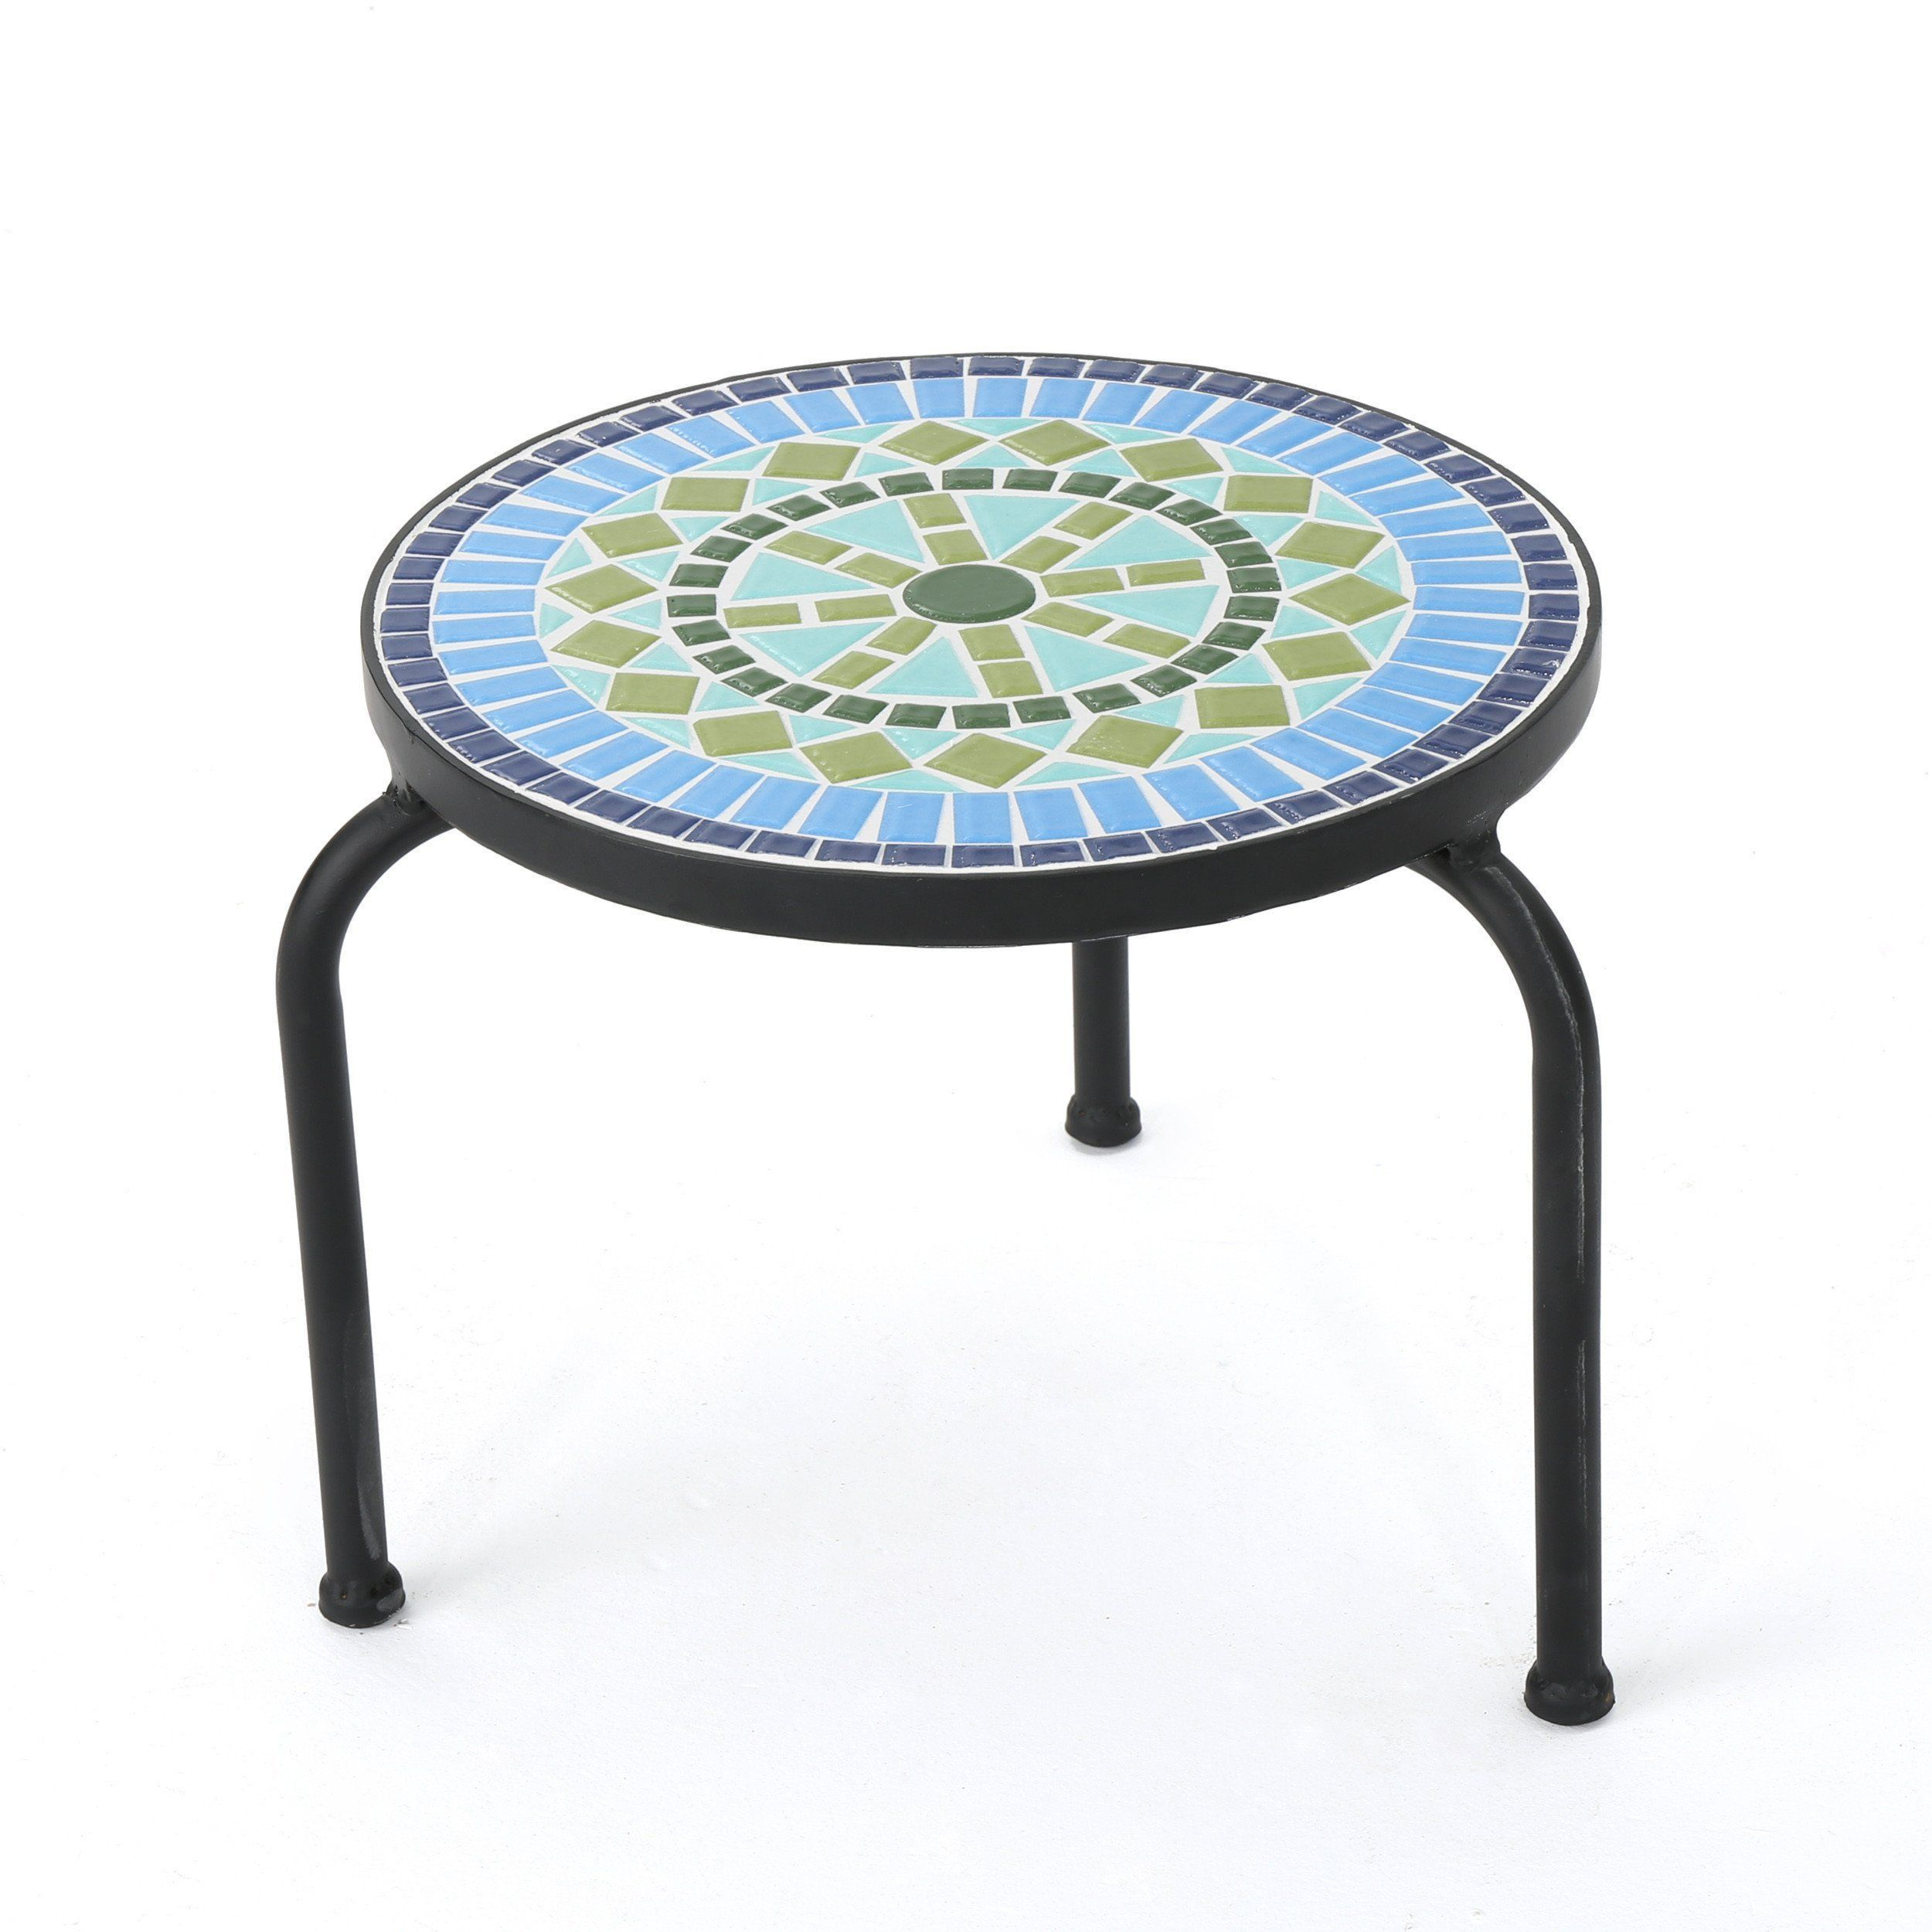 isildur outdoor blue green ceramic tile iron frame side table inch round holiday tablecloth living room sofa beach coffee oak wood next dining furniture winsome accent cherry